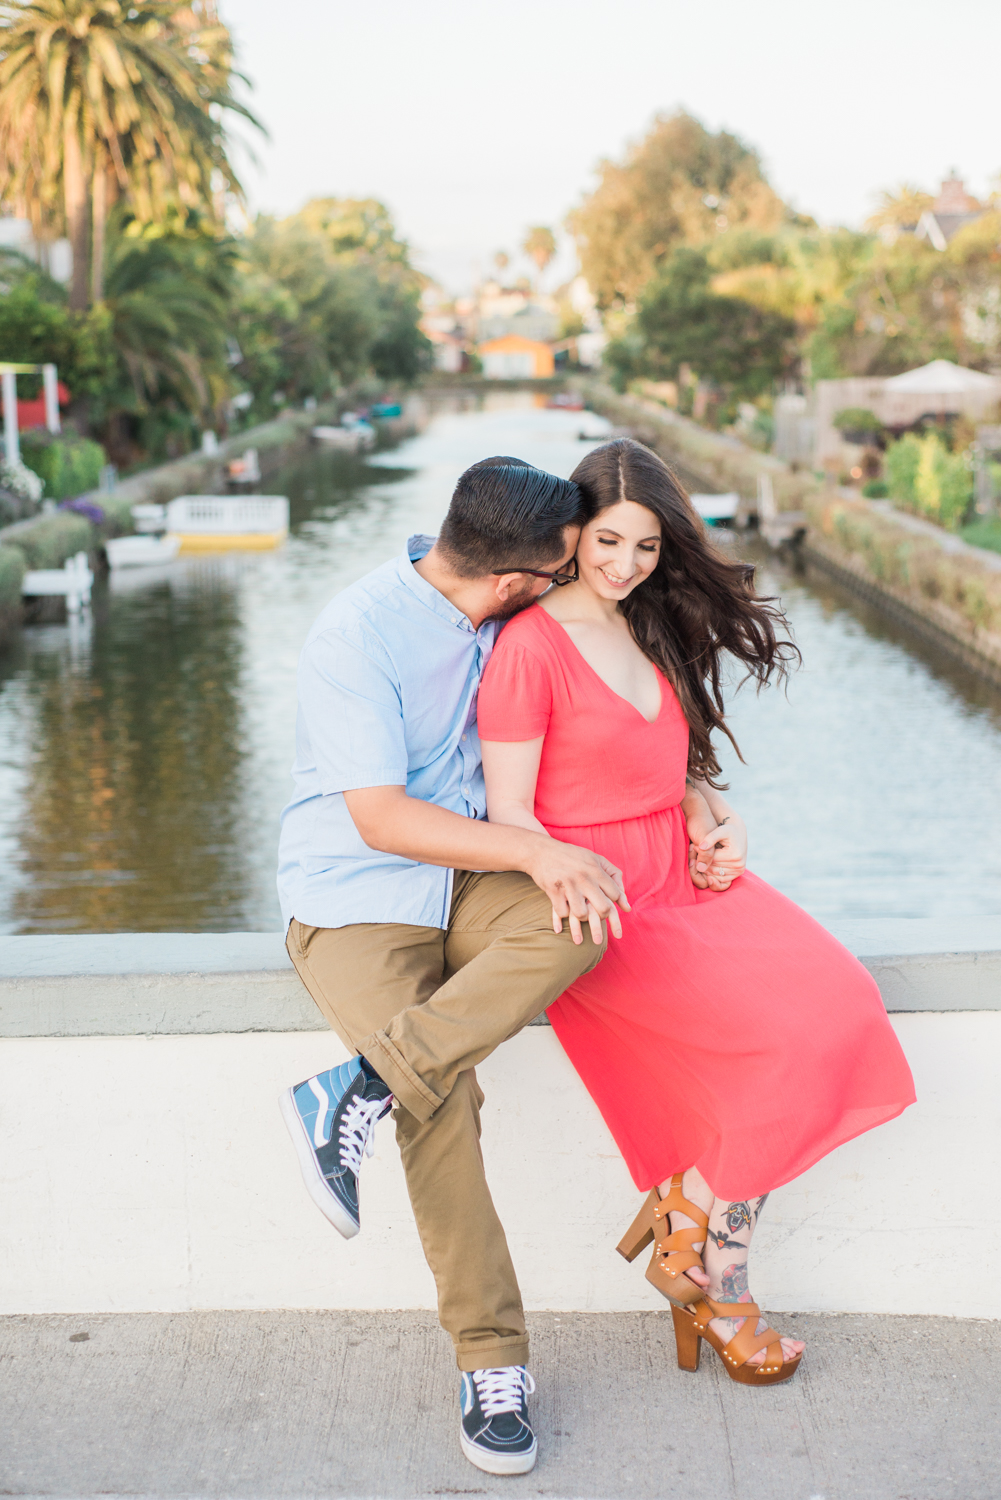 lauren&anthony-venice-canals-engagement-session-photography-los-angeles-wedding-photographer-venice-2.jpg